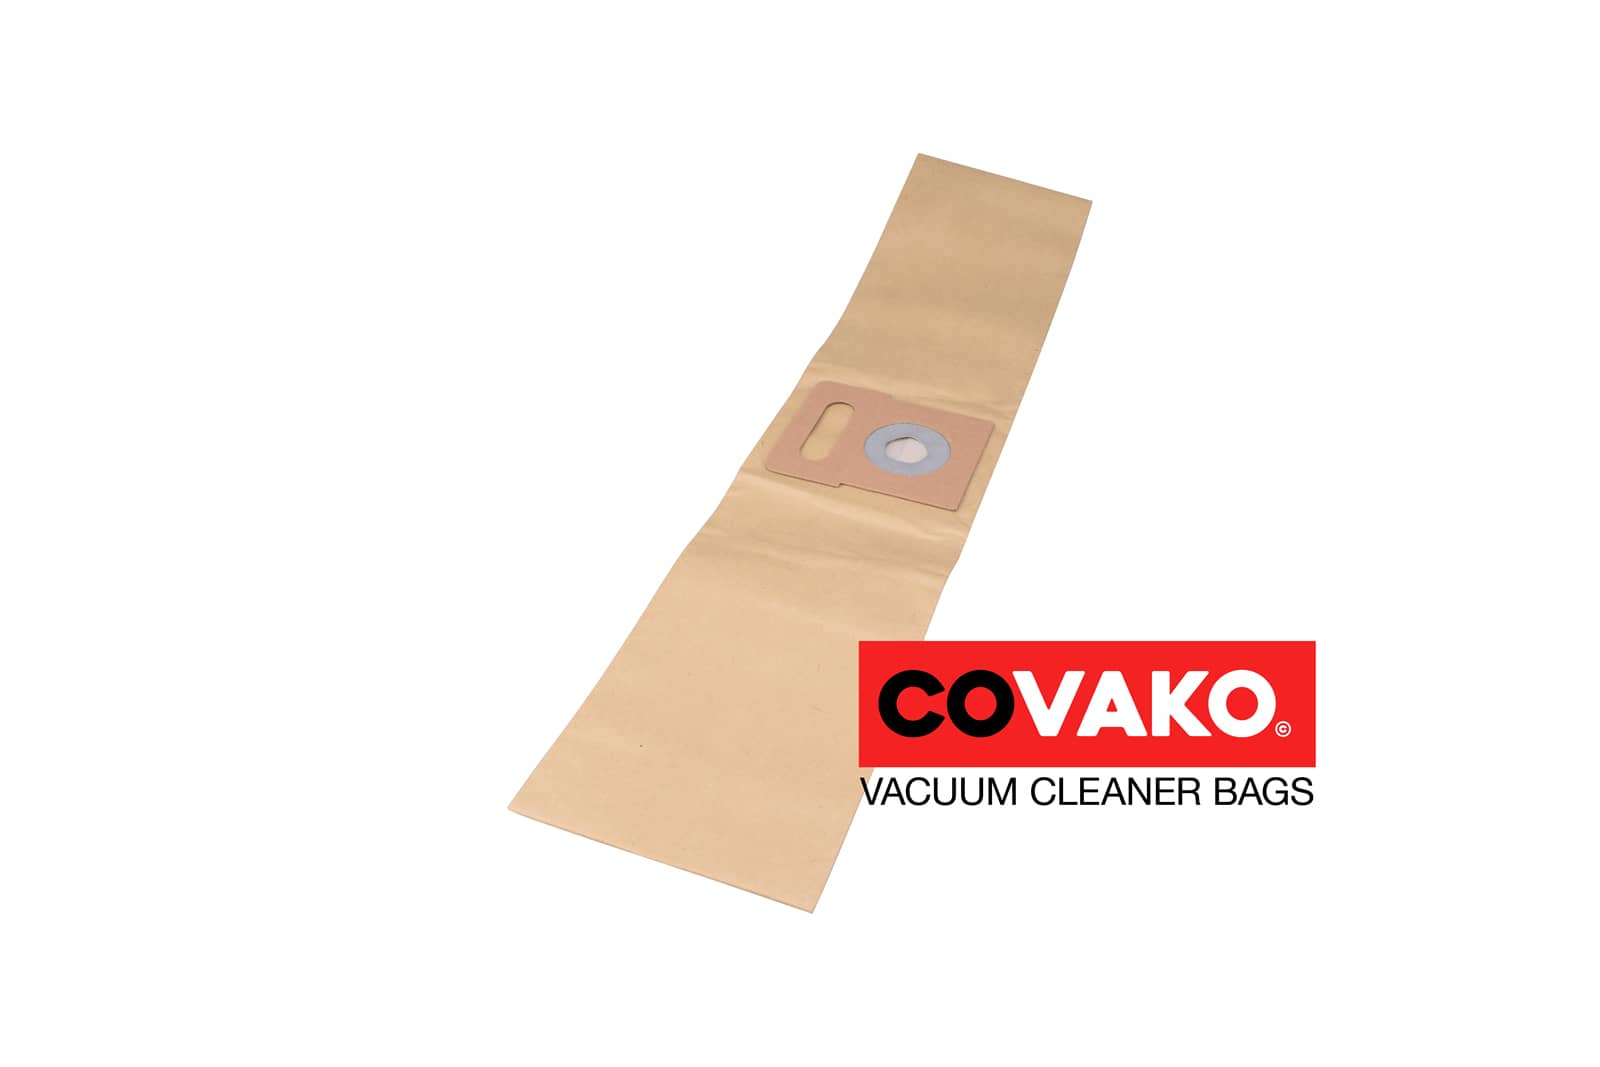 Oehme Otto Profi / Paper - Oehme Otto vacuum cleaner bags